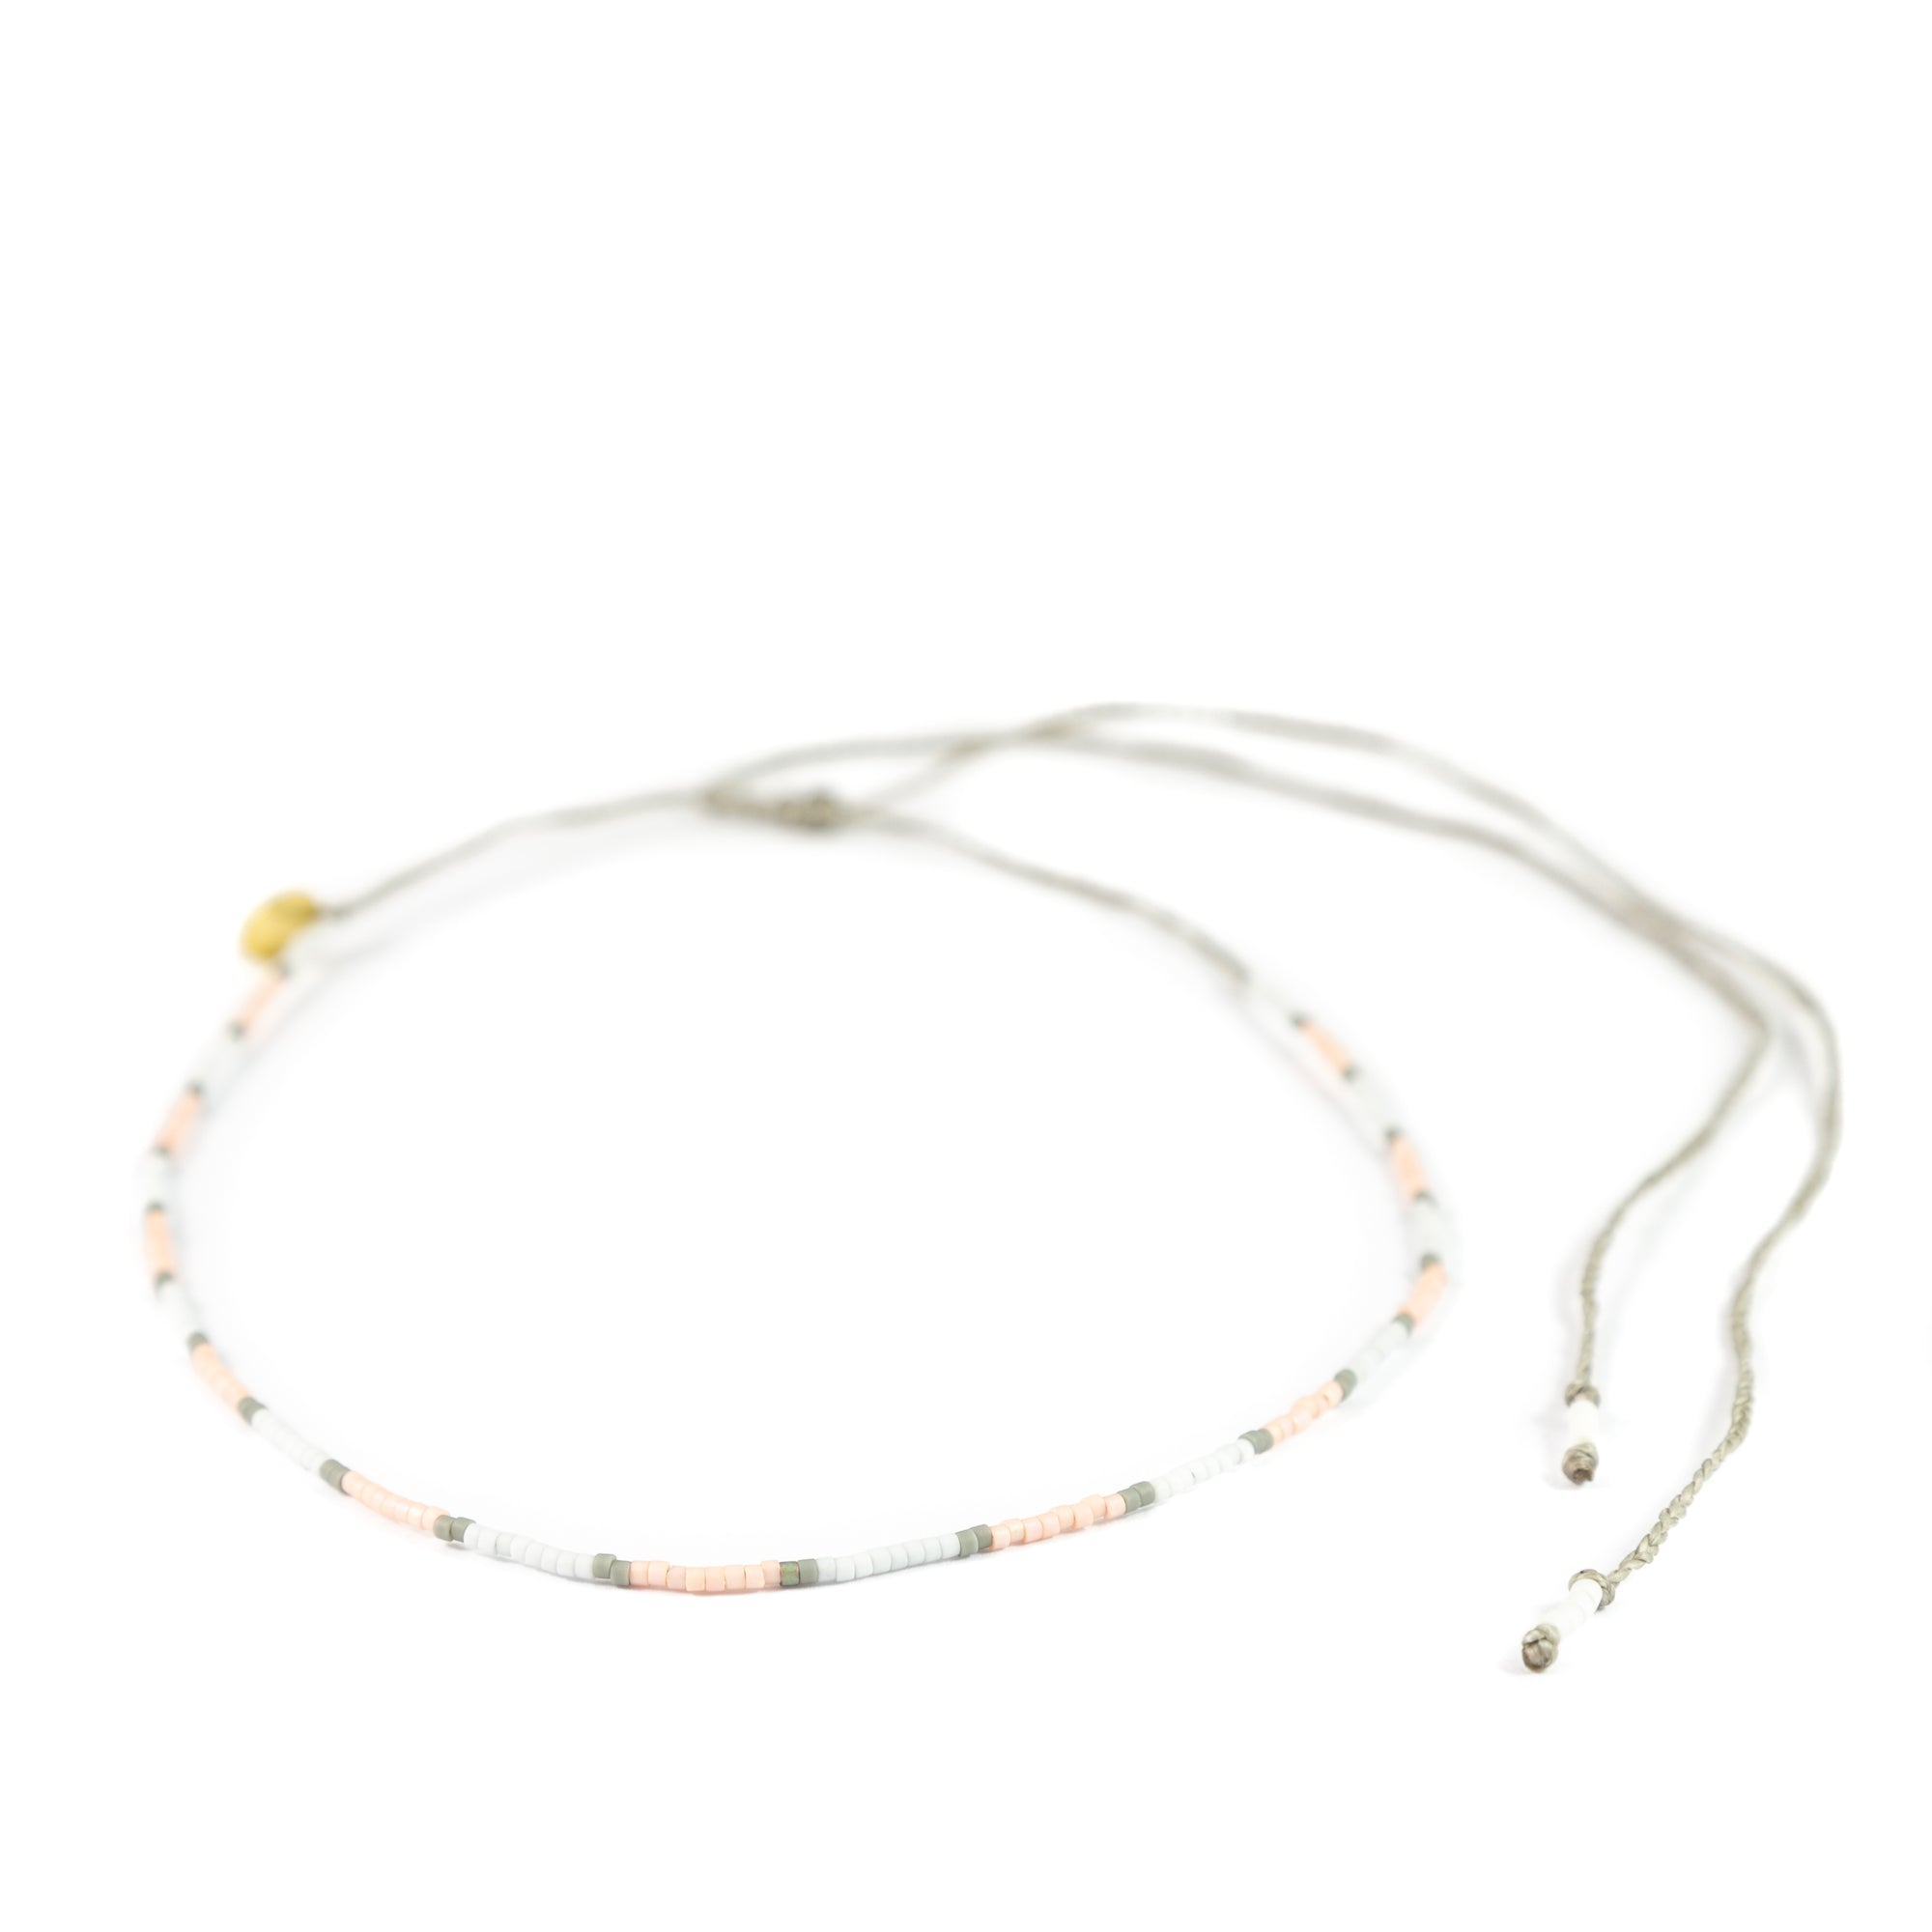 Greys & Coral Color Block Mermaid Necklace